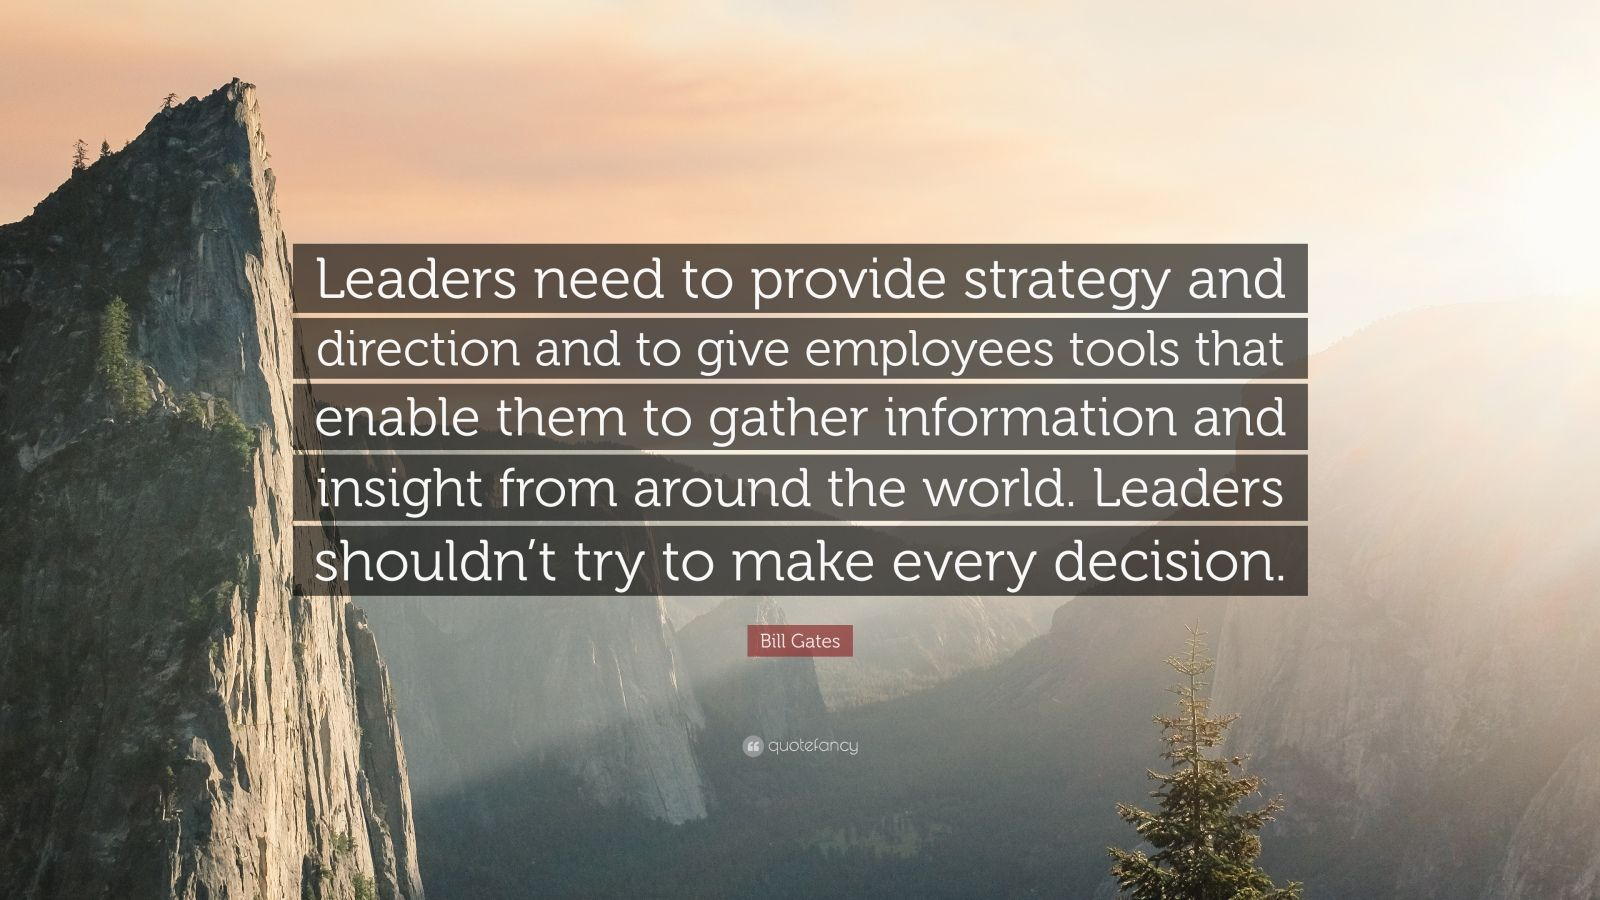 """Bill Gates Quote: """"Leaders need to provide strategy and direction and to give employees tools that enable them to gather information and insight from around the world. Leaders shouldn't try to make every decision."""""""